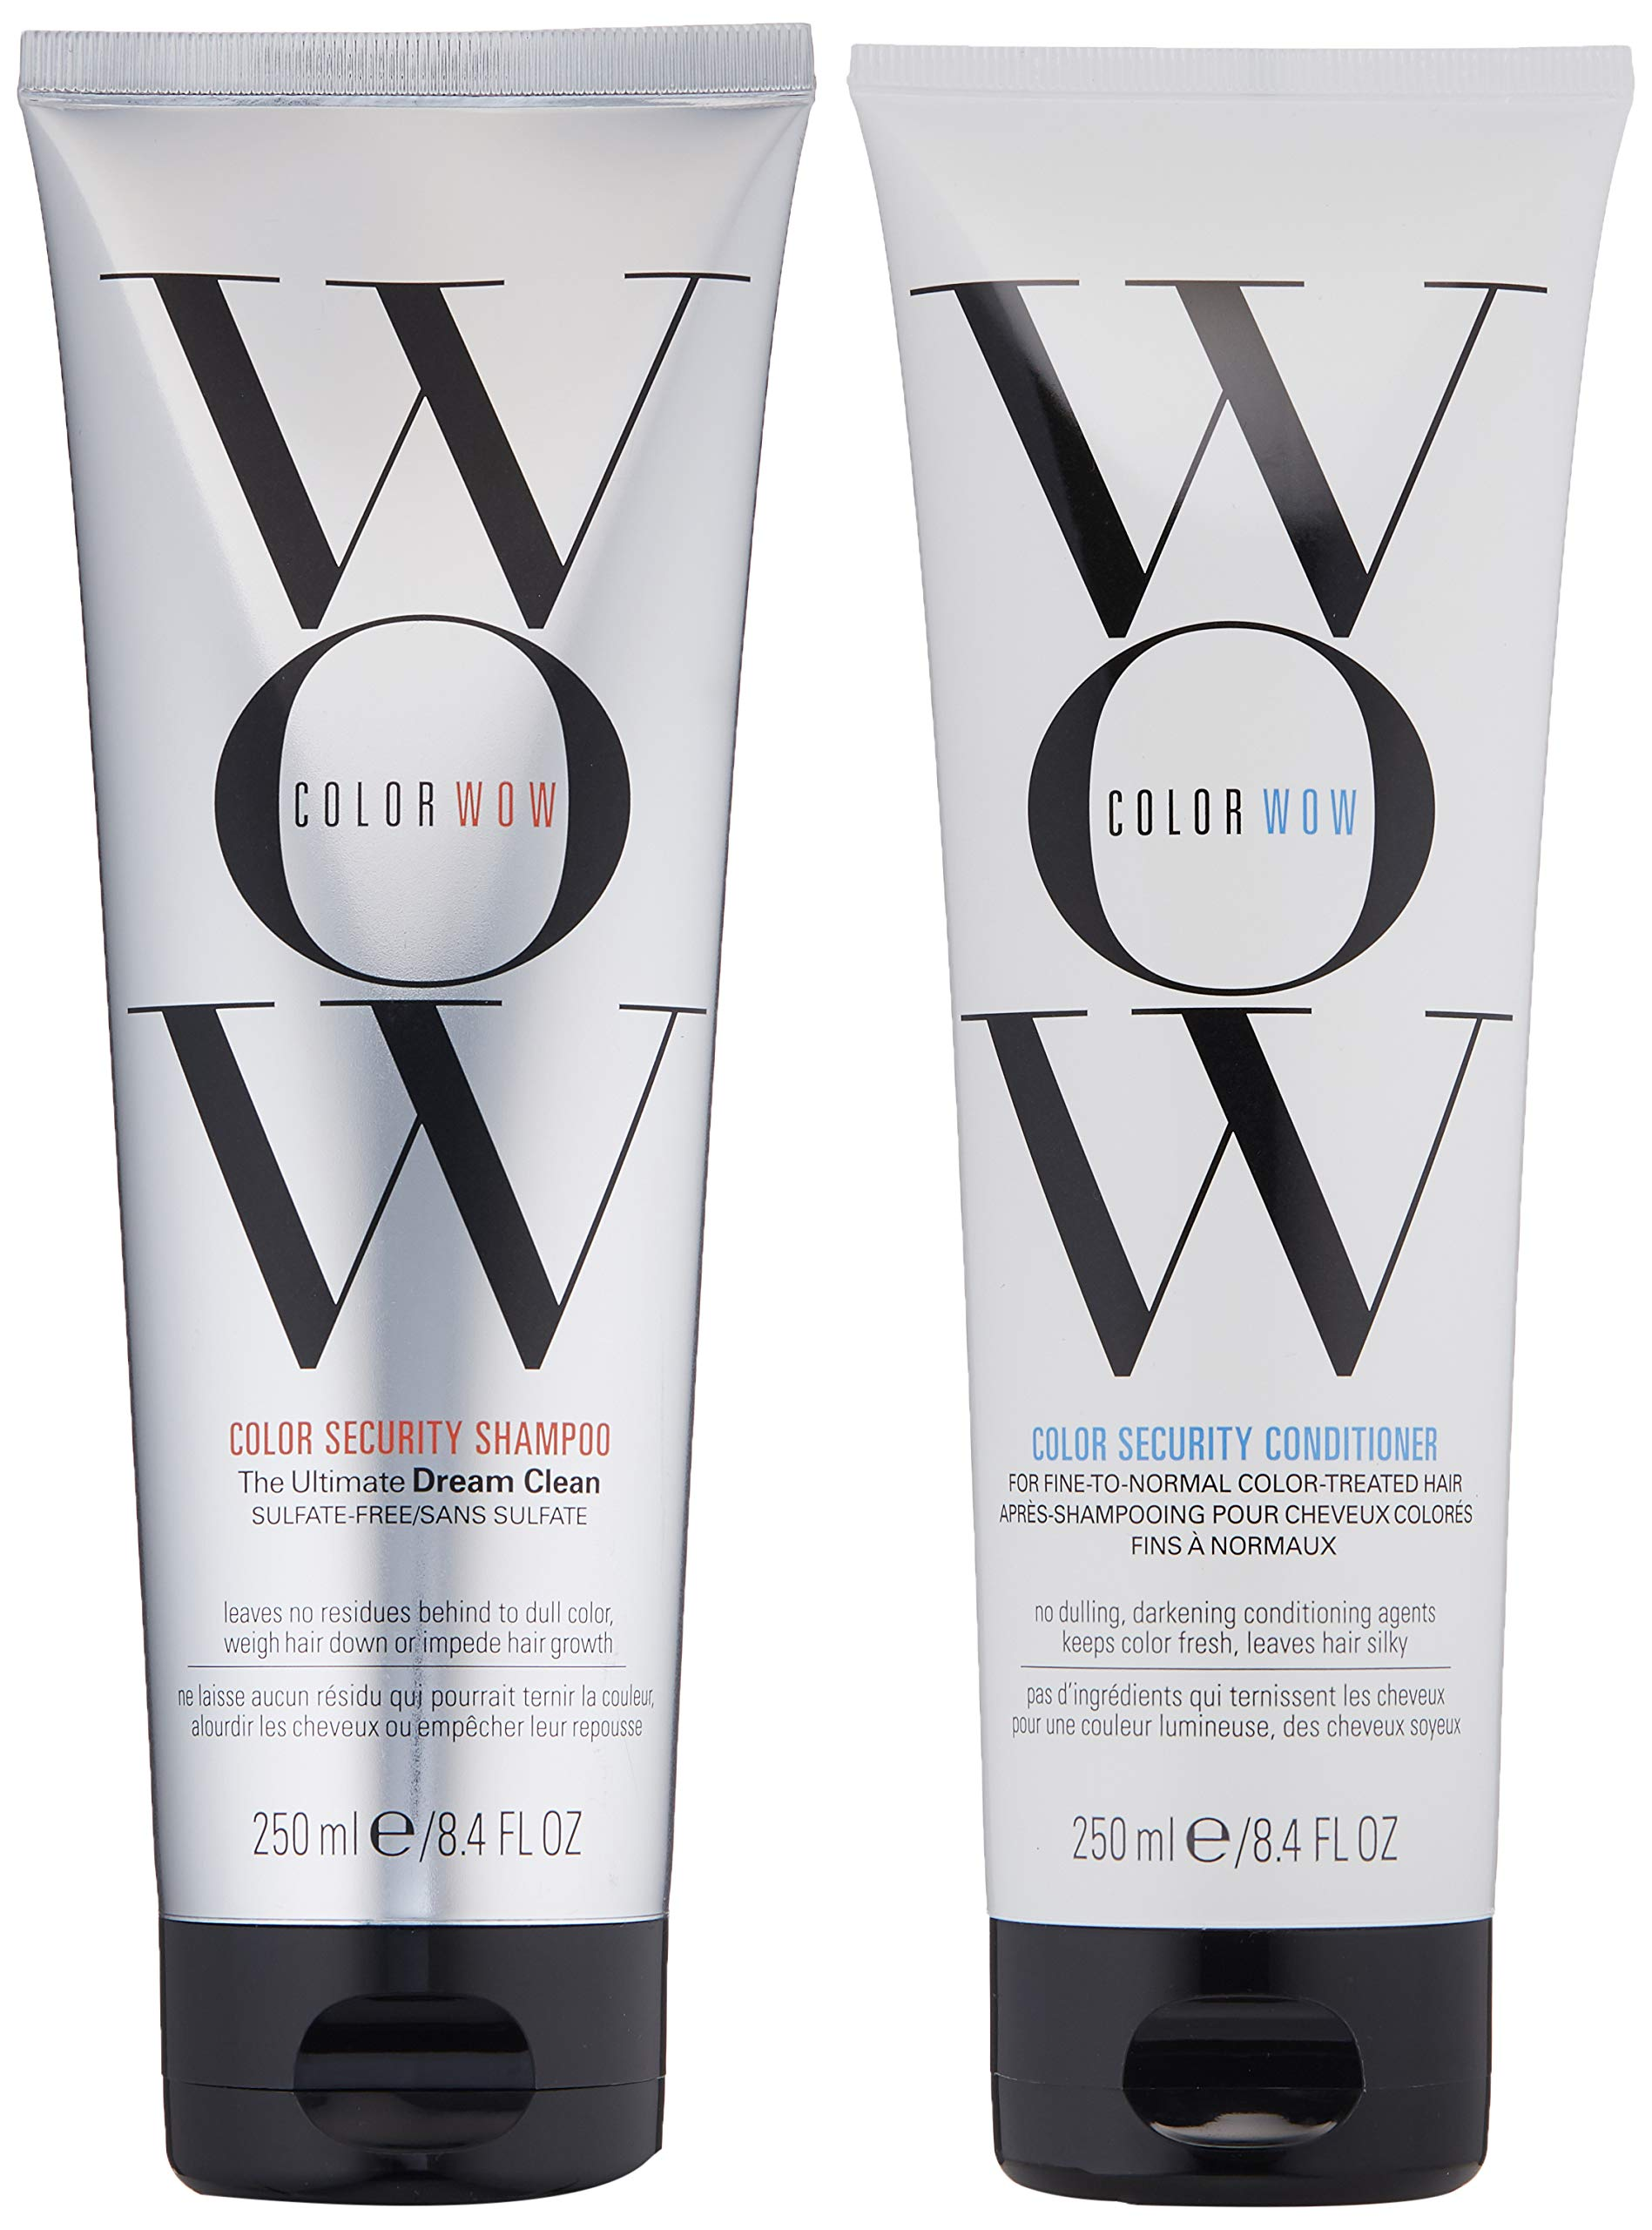 COLOR WOW Color Security Shampoo and Conditioner, Fine to Normal Hair, Duo Set, Sulfate free, for Color Treated Hair, Color Safe, 8.4 fl. oz. by COLOR WOW